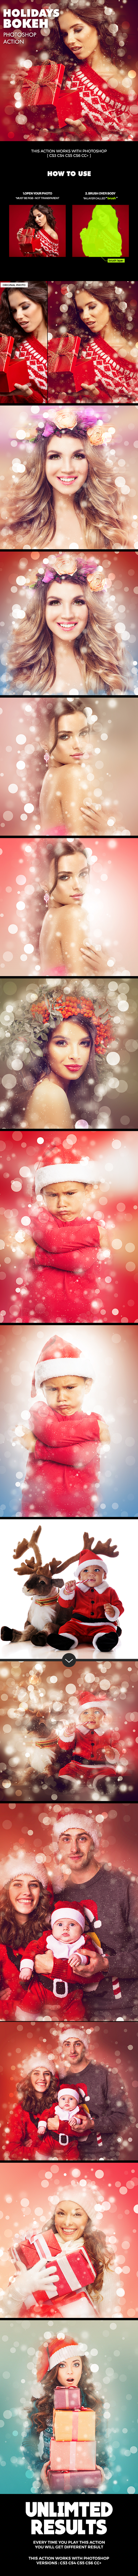 GraphicRiver Holidays Bokeh Photoshop Action 21054884